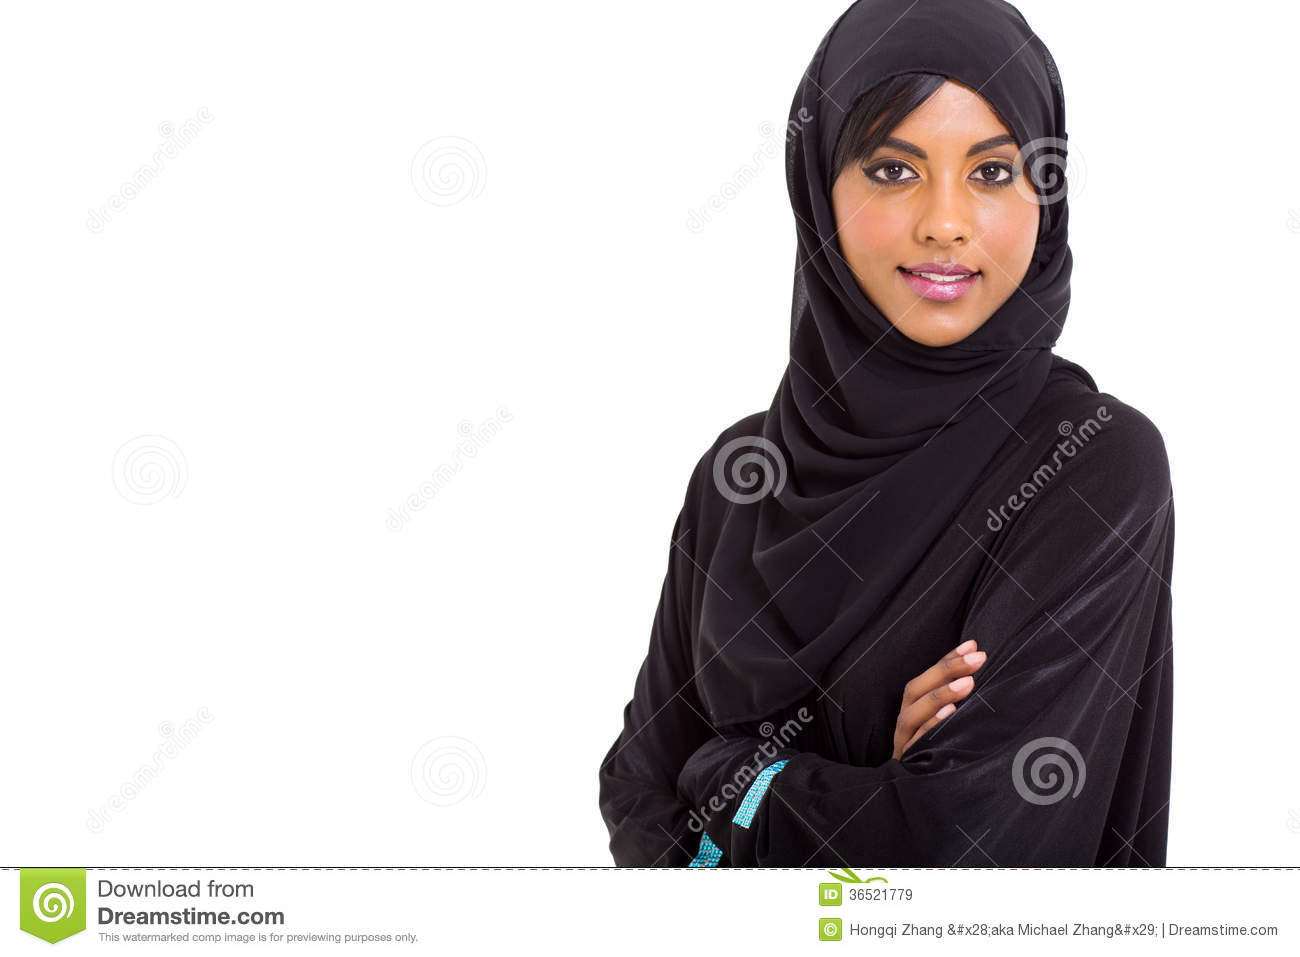 """dating a modern muslim man A young man asked what might be considered going too far when courting a muslim woman panelists warned that even seemingly innocuous e-mail exchanges or online dating could topple one off the islamic path if one lacked vigilance """"all of these are traps of the devil to pull us in and we have no idea."""